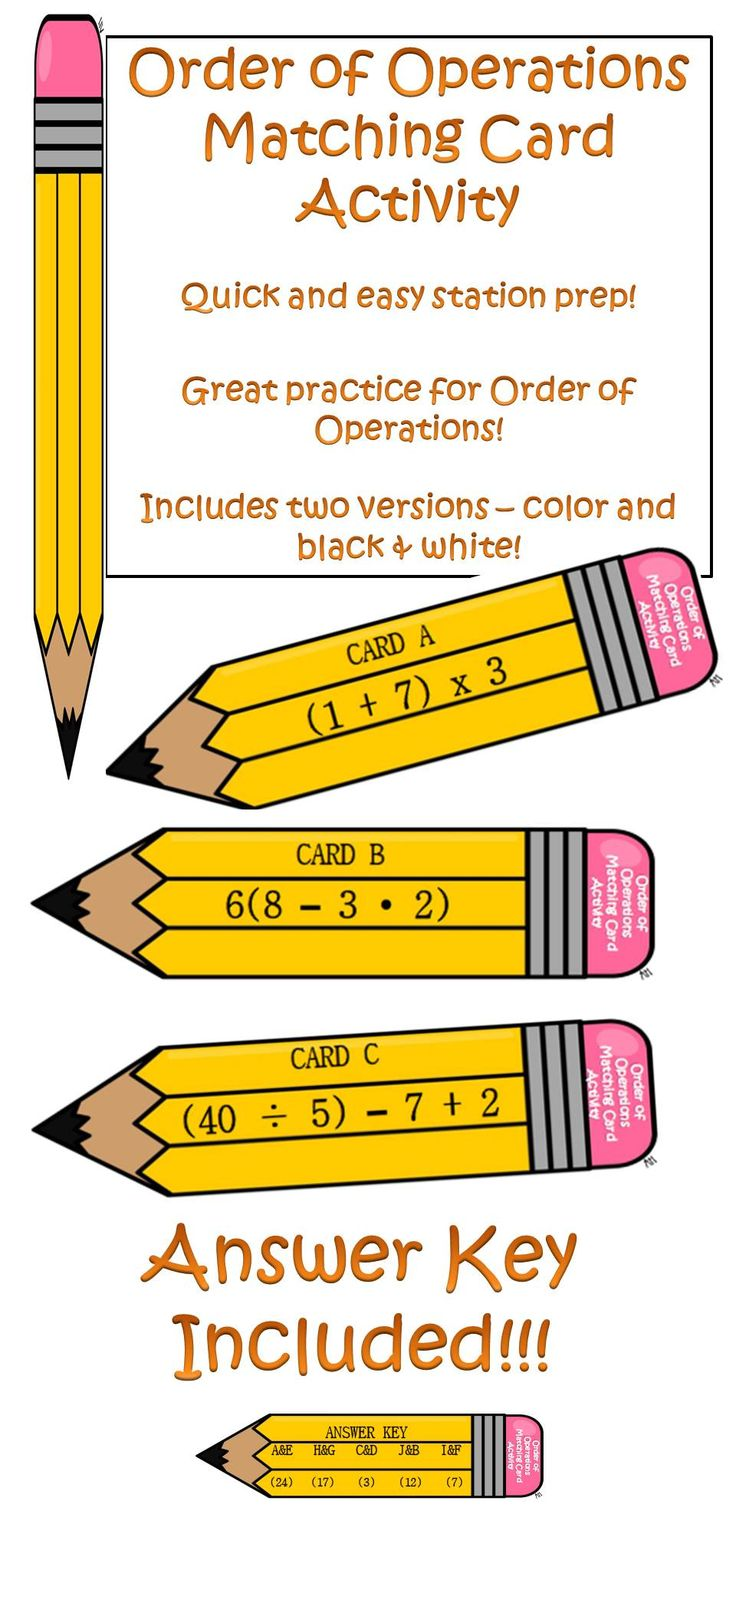 Order of Operations Matching Card Activity Includes